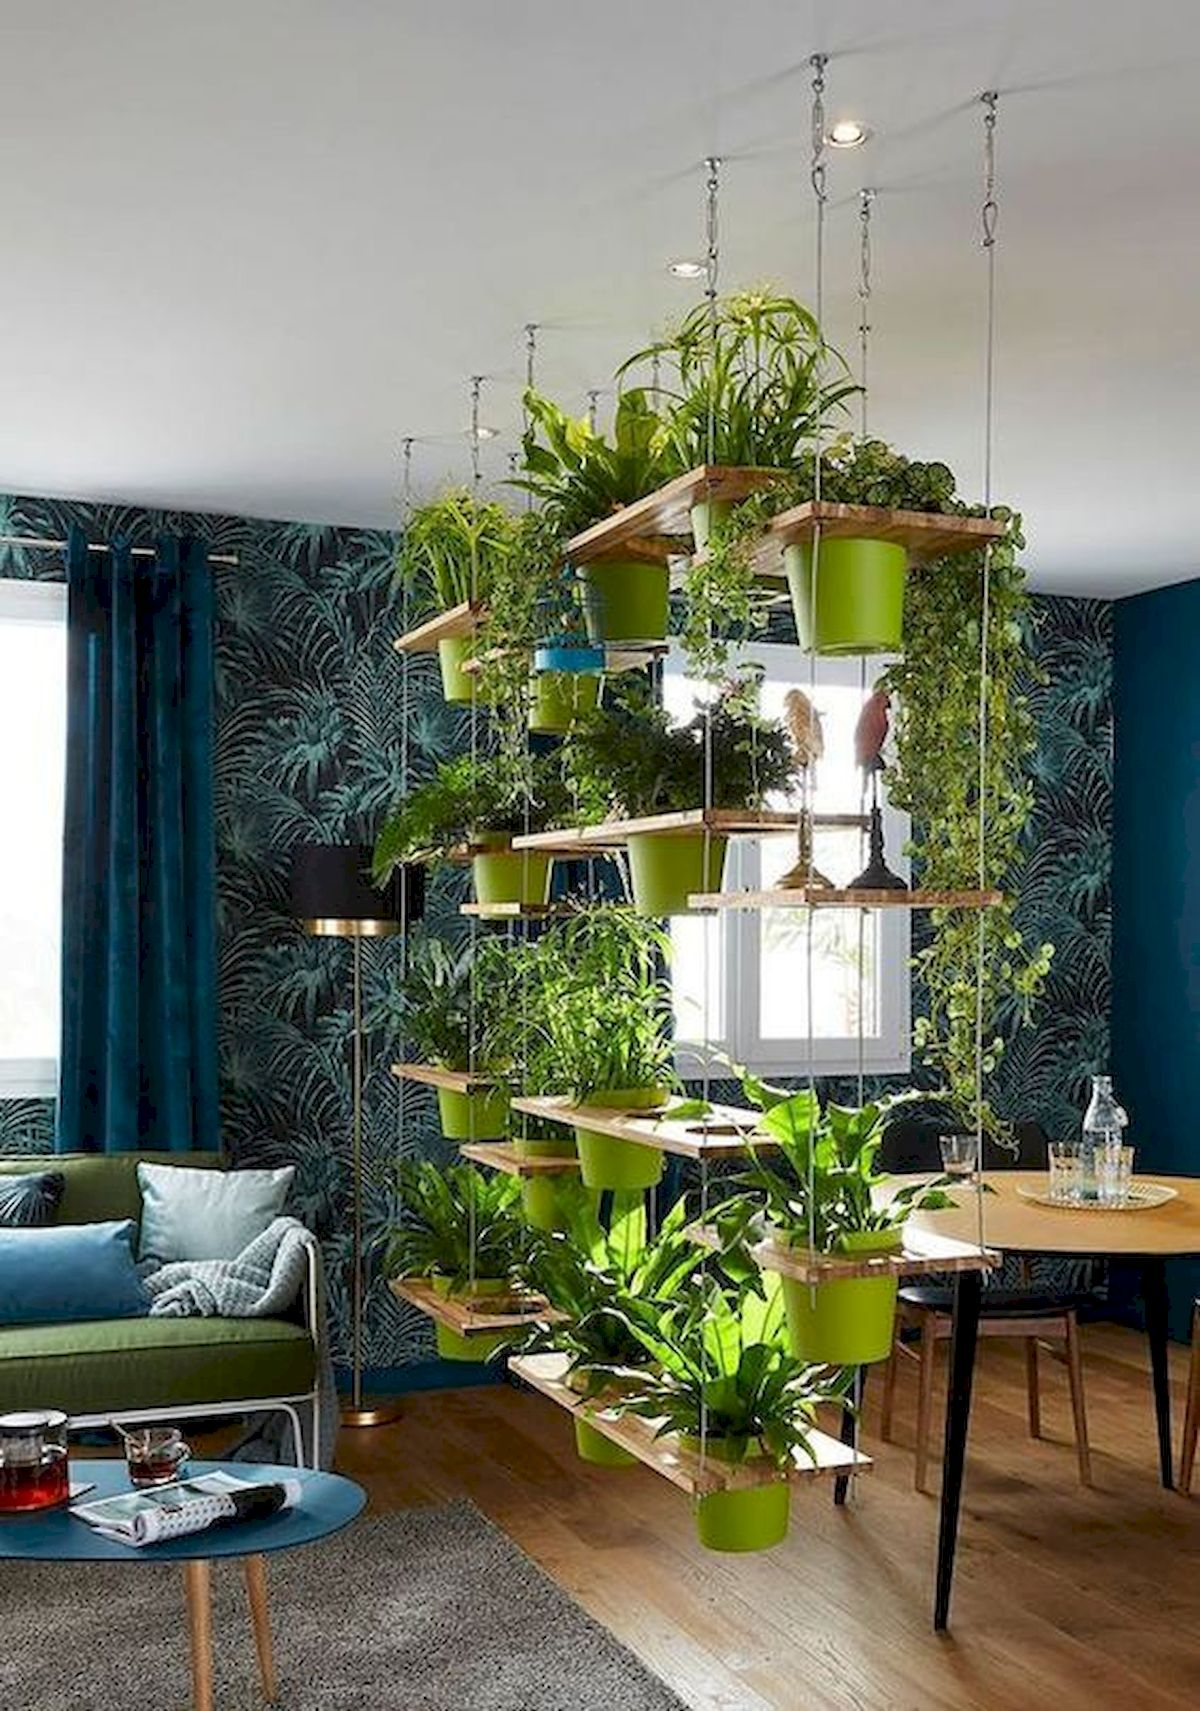 40 Awesome Indoor Garden Design Ideas That Look Beautiful (3)